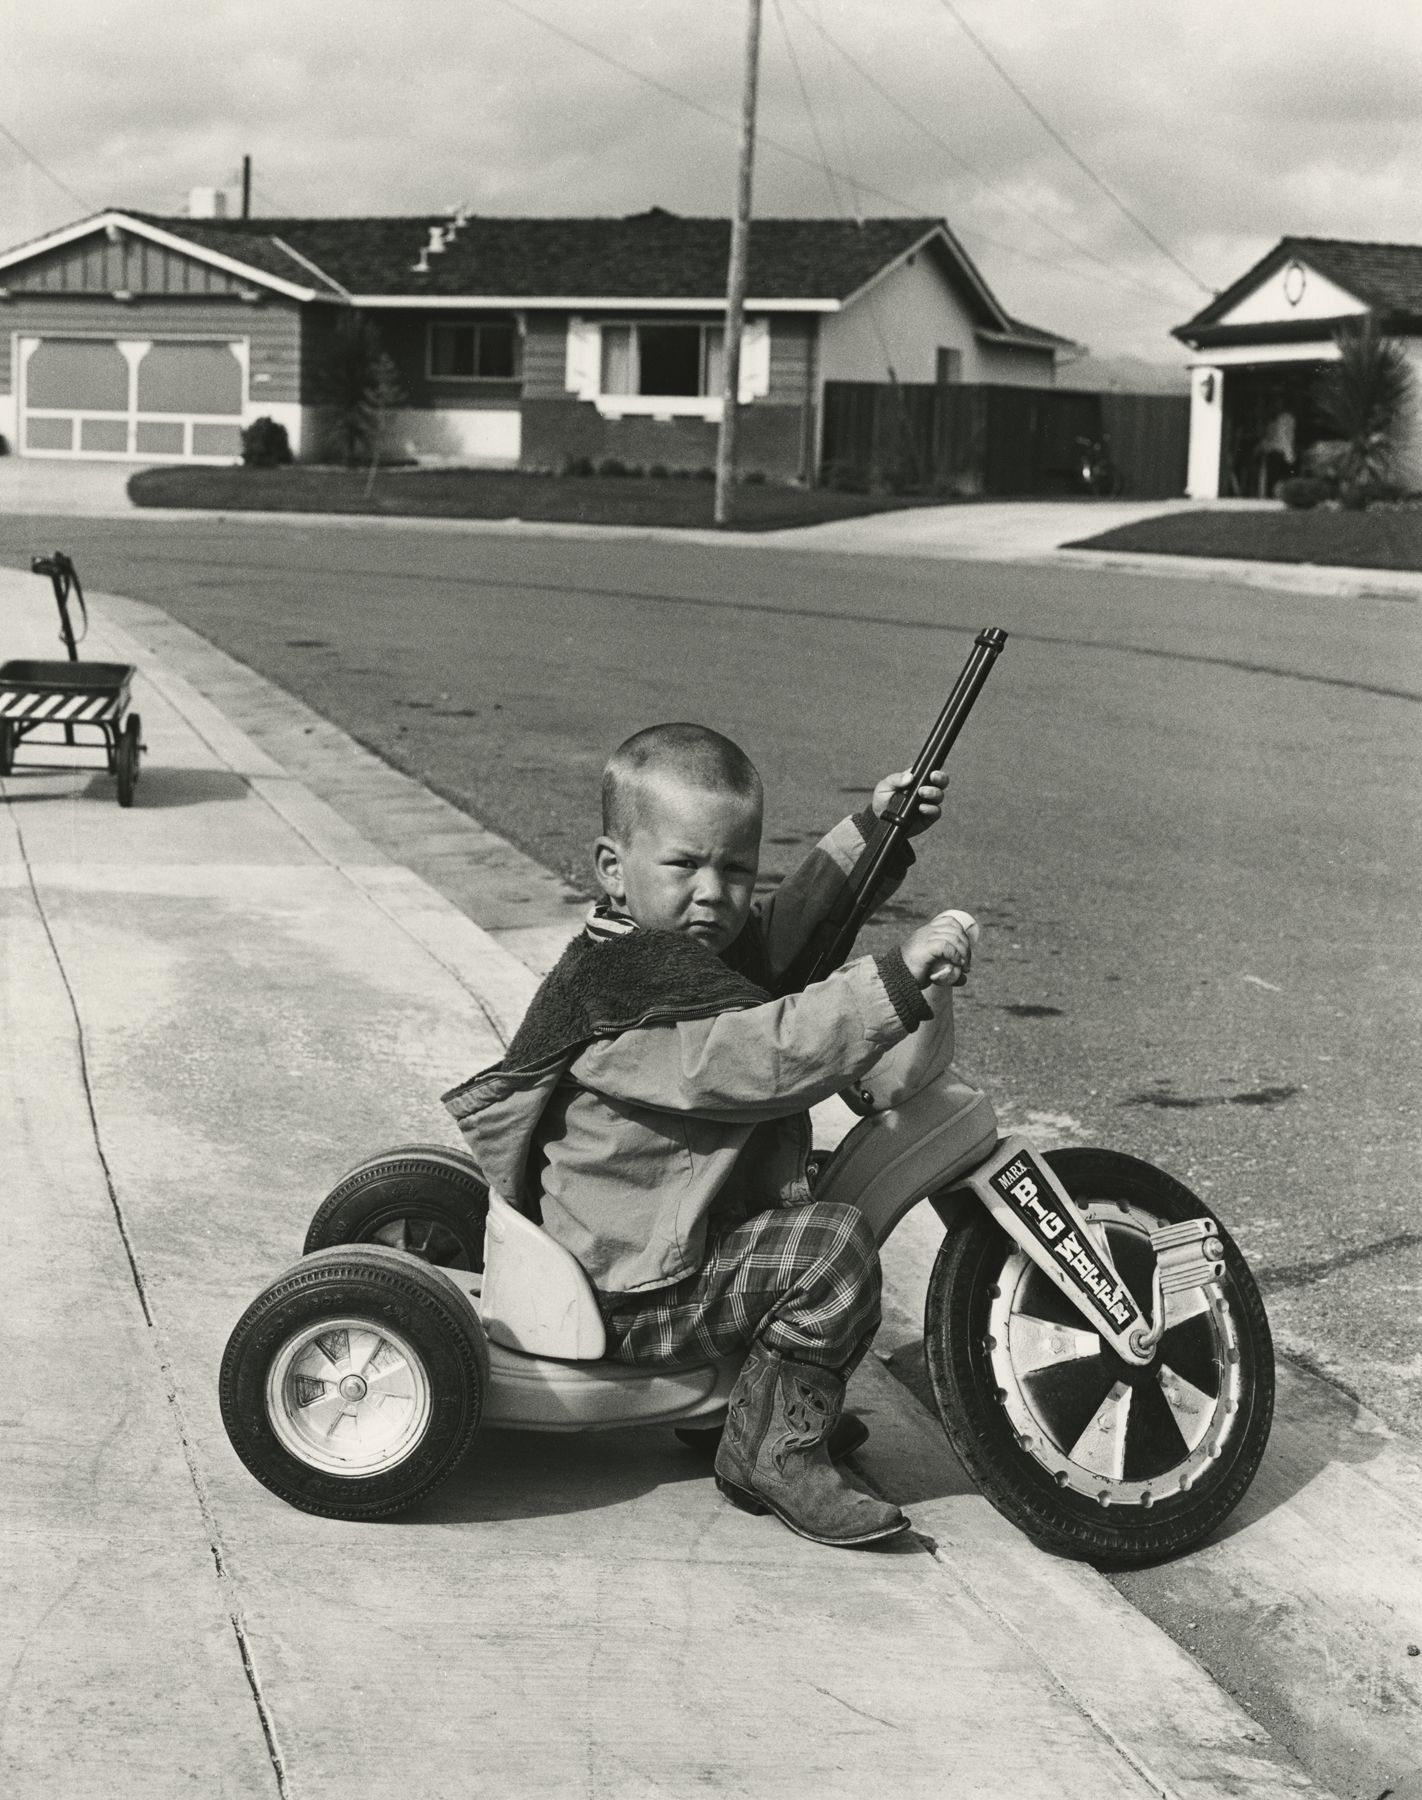 Bill Owens - I don't feel that Richie playing with a gun will have a negative effect on his personality, 1968-72 - Howard Greenberg Gallery - 2018